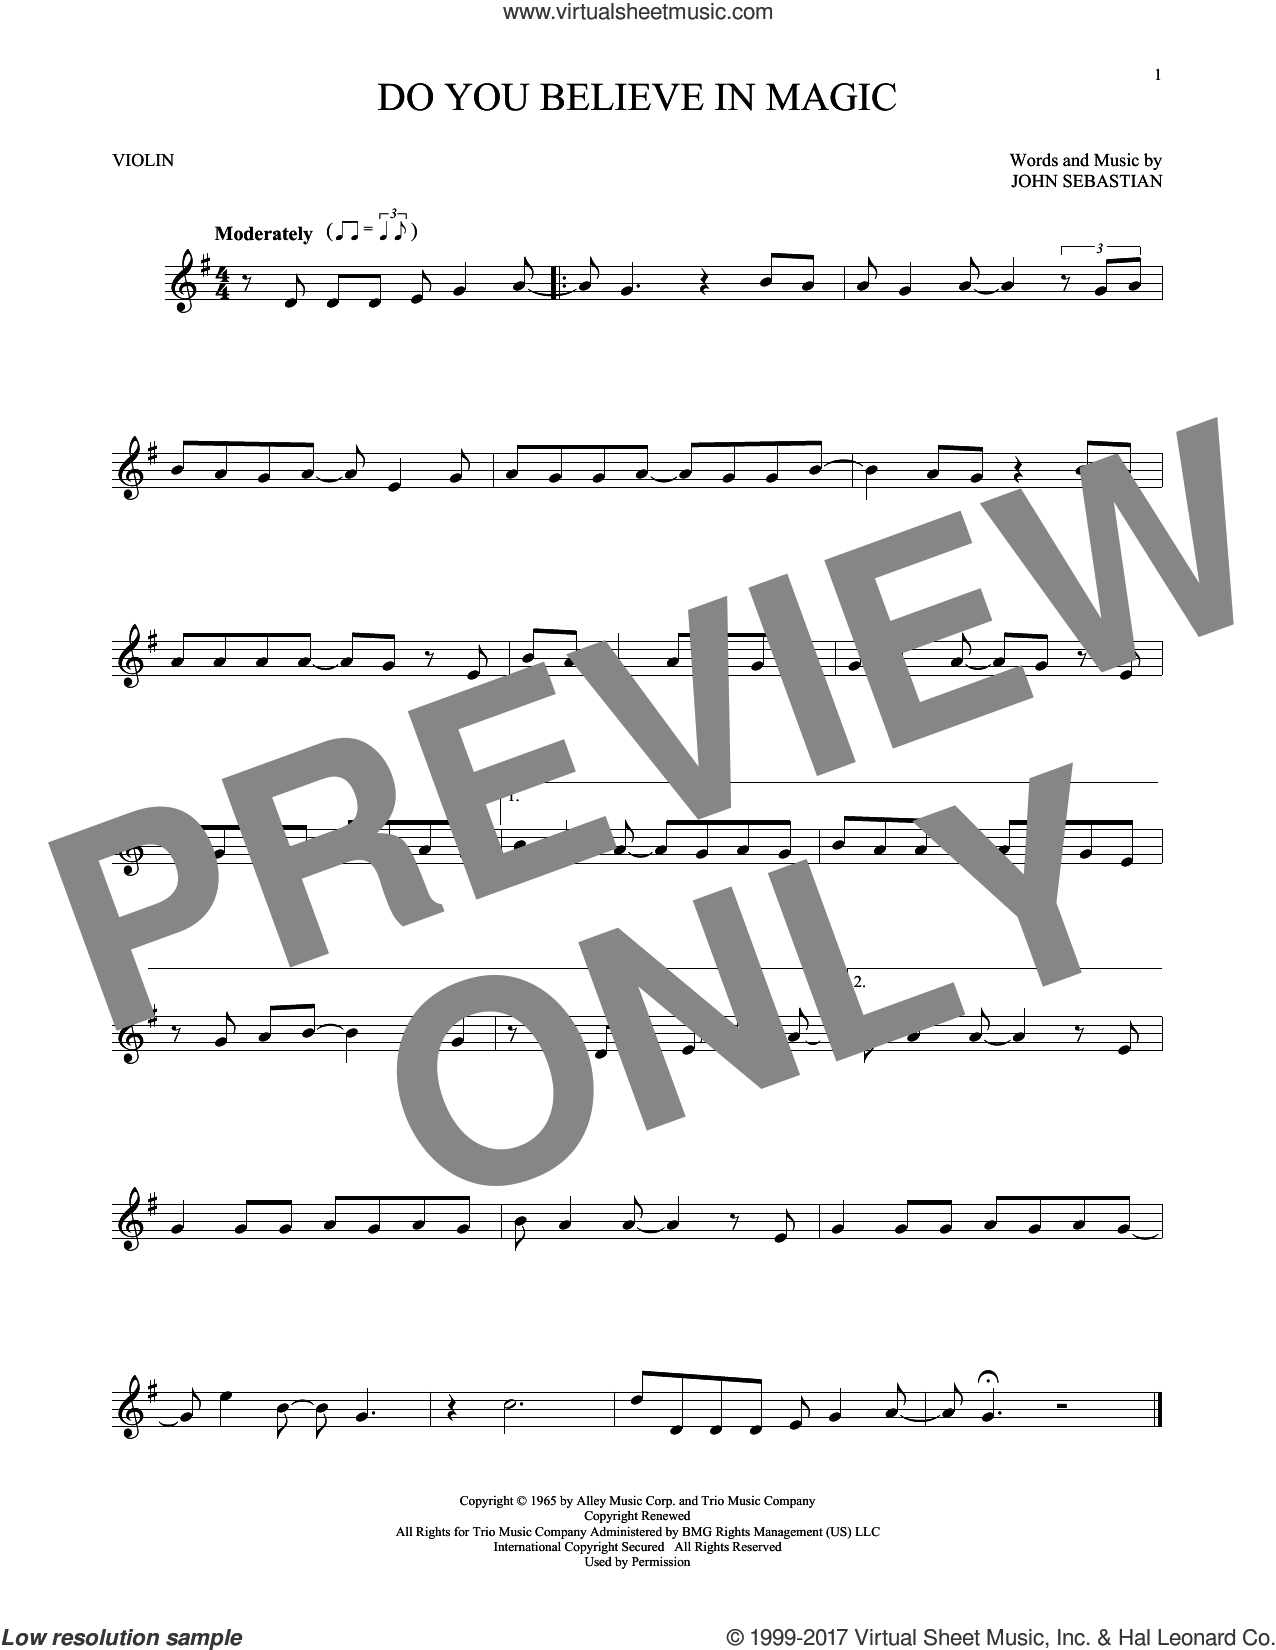 Do You Believe In Magic sheet music for violin solo by Lovin' Spoonful and John Sebastian, intermediate